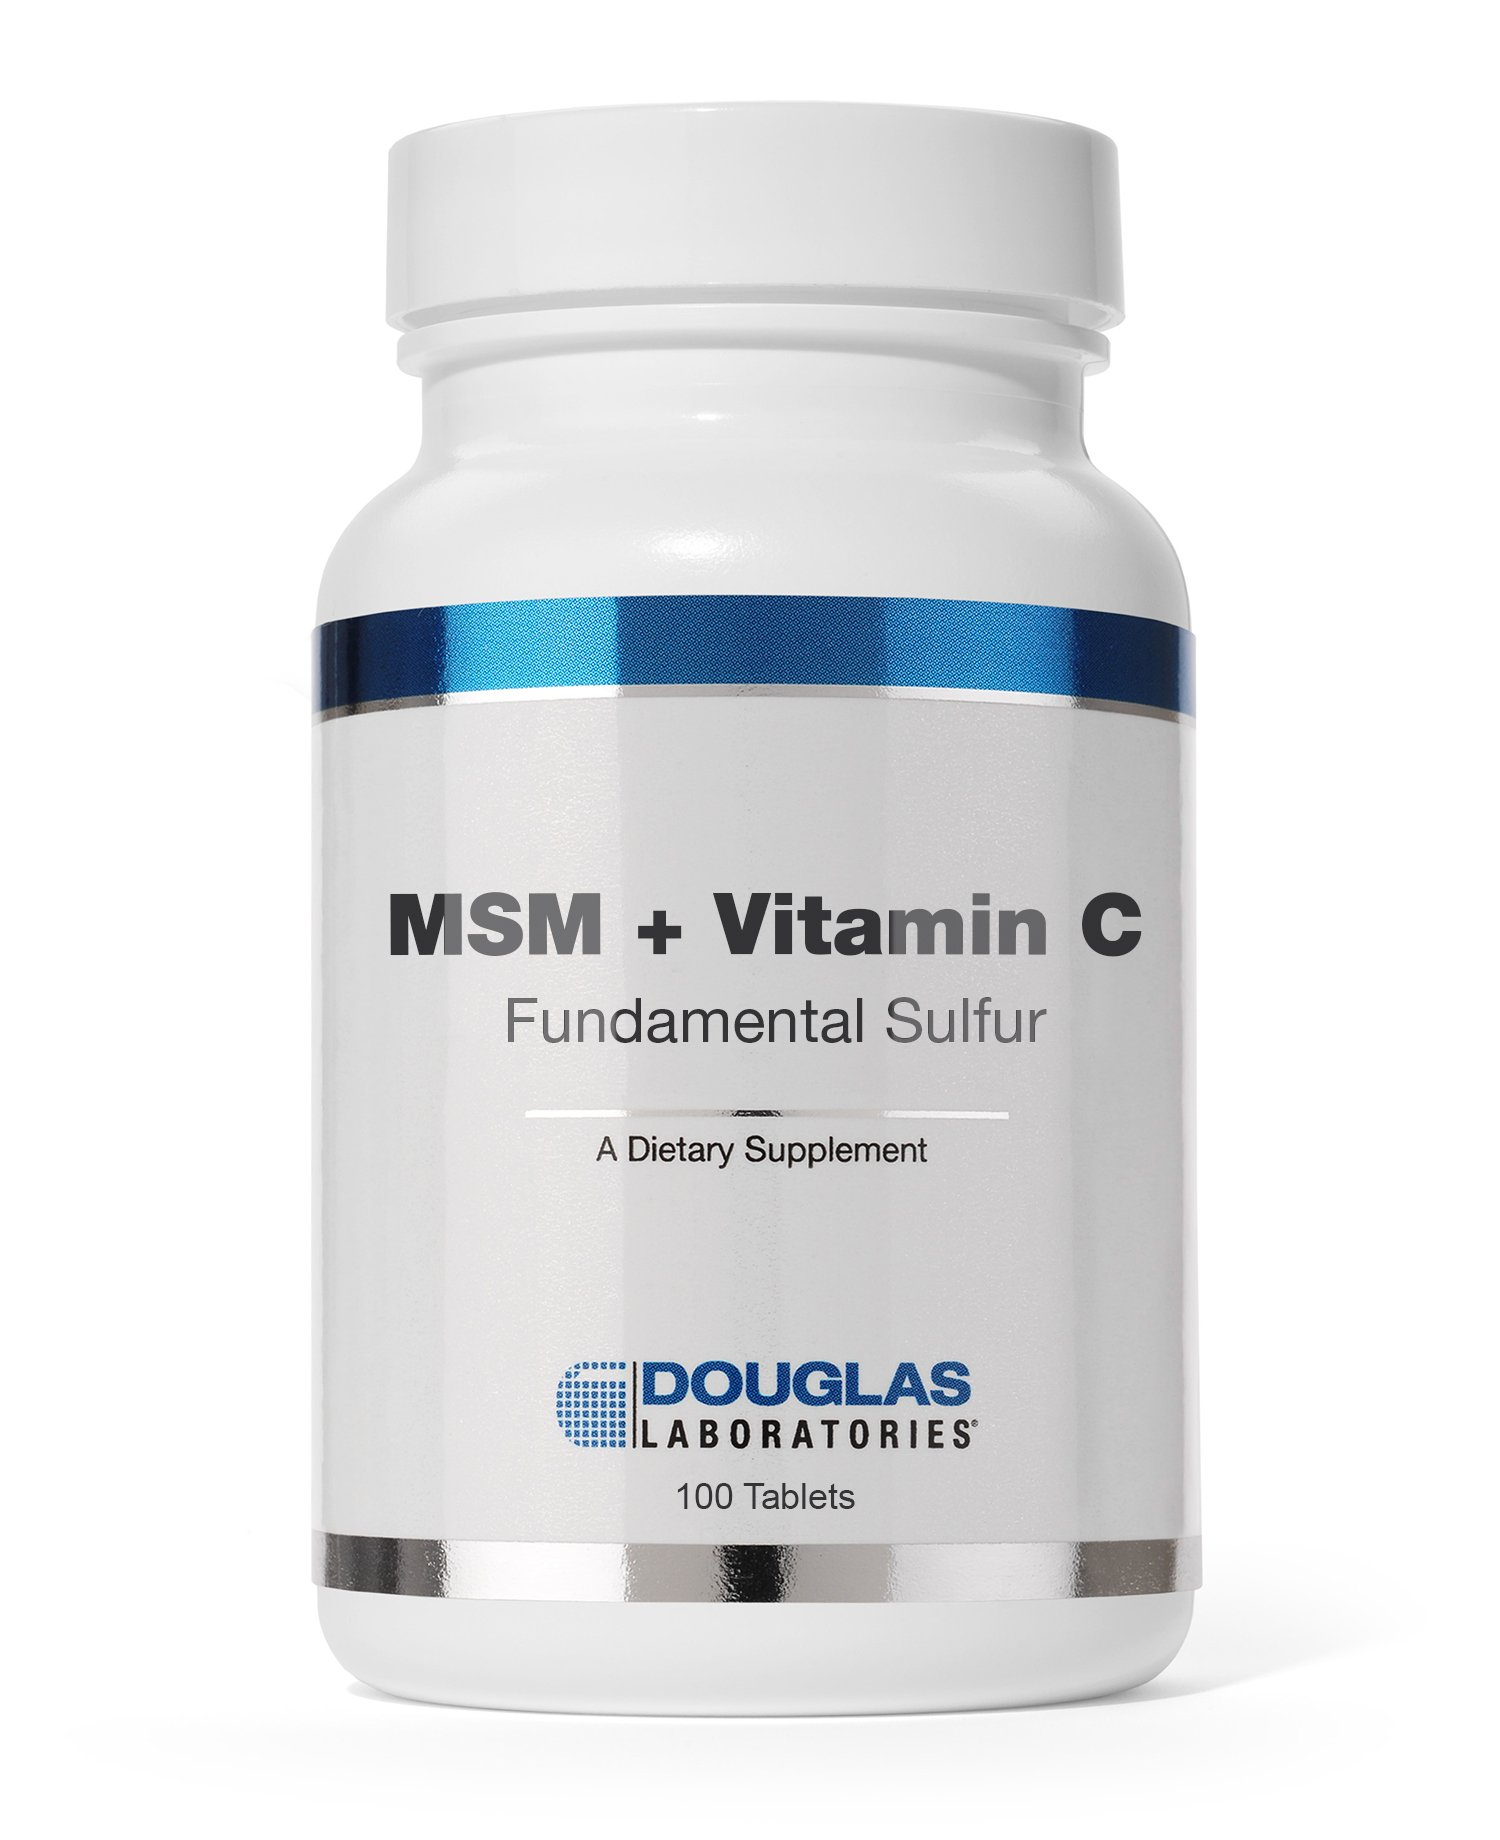 Douglas Laboratories® - MSM + Vitamin C (Fundamental Sulfur) - Supports Wound Healing and Capillary Health* - 100 Tablets